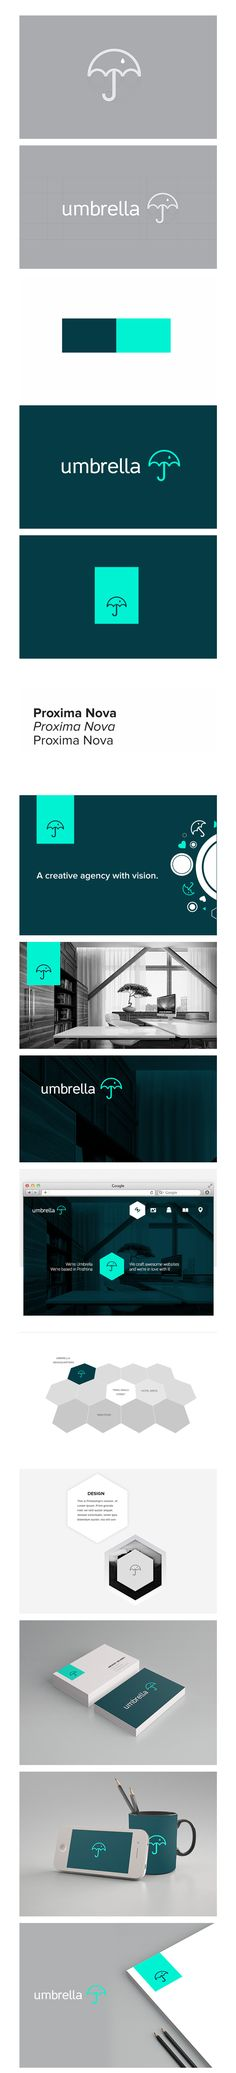 Cool Brand Identity Design on the Internet. Umbrella. #branding #brandidentity #identitydesign